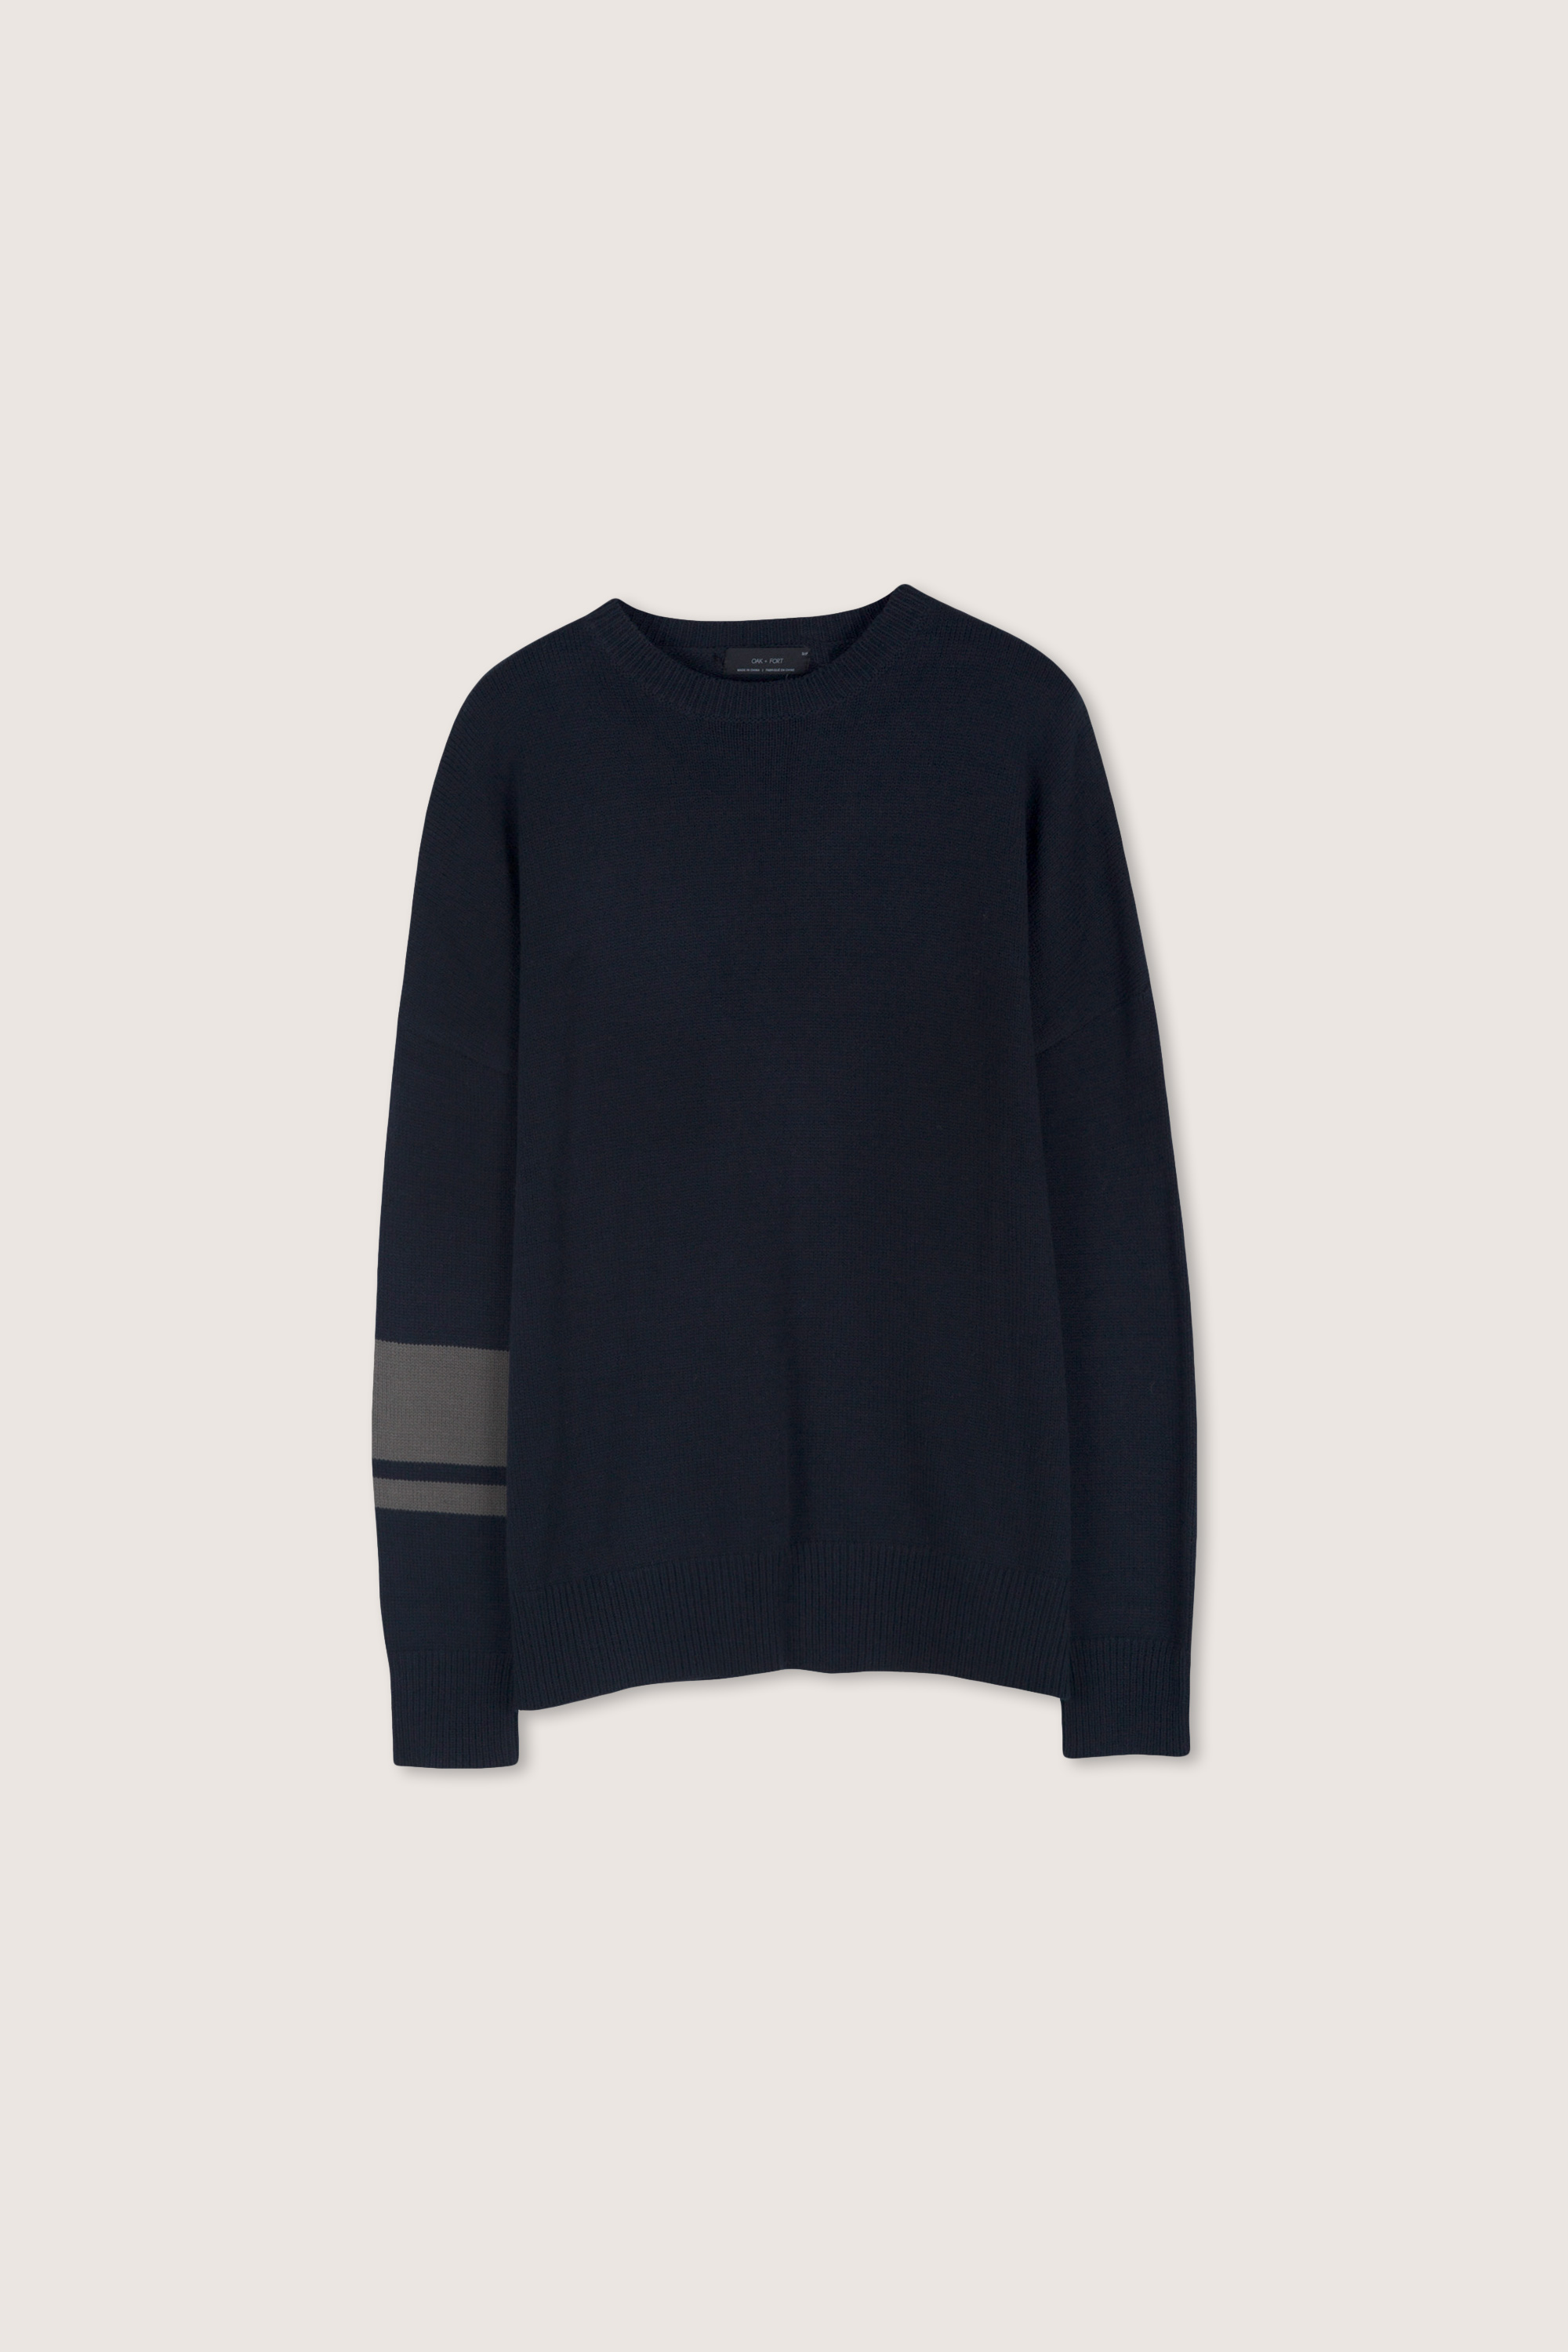 Sweater 1935 Navy 7